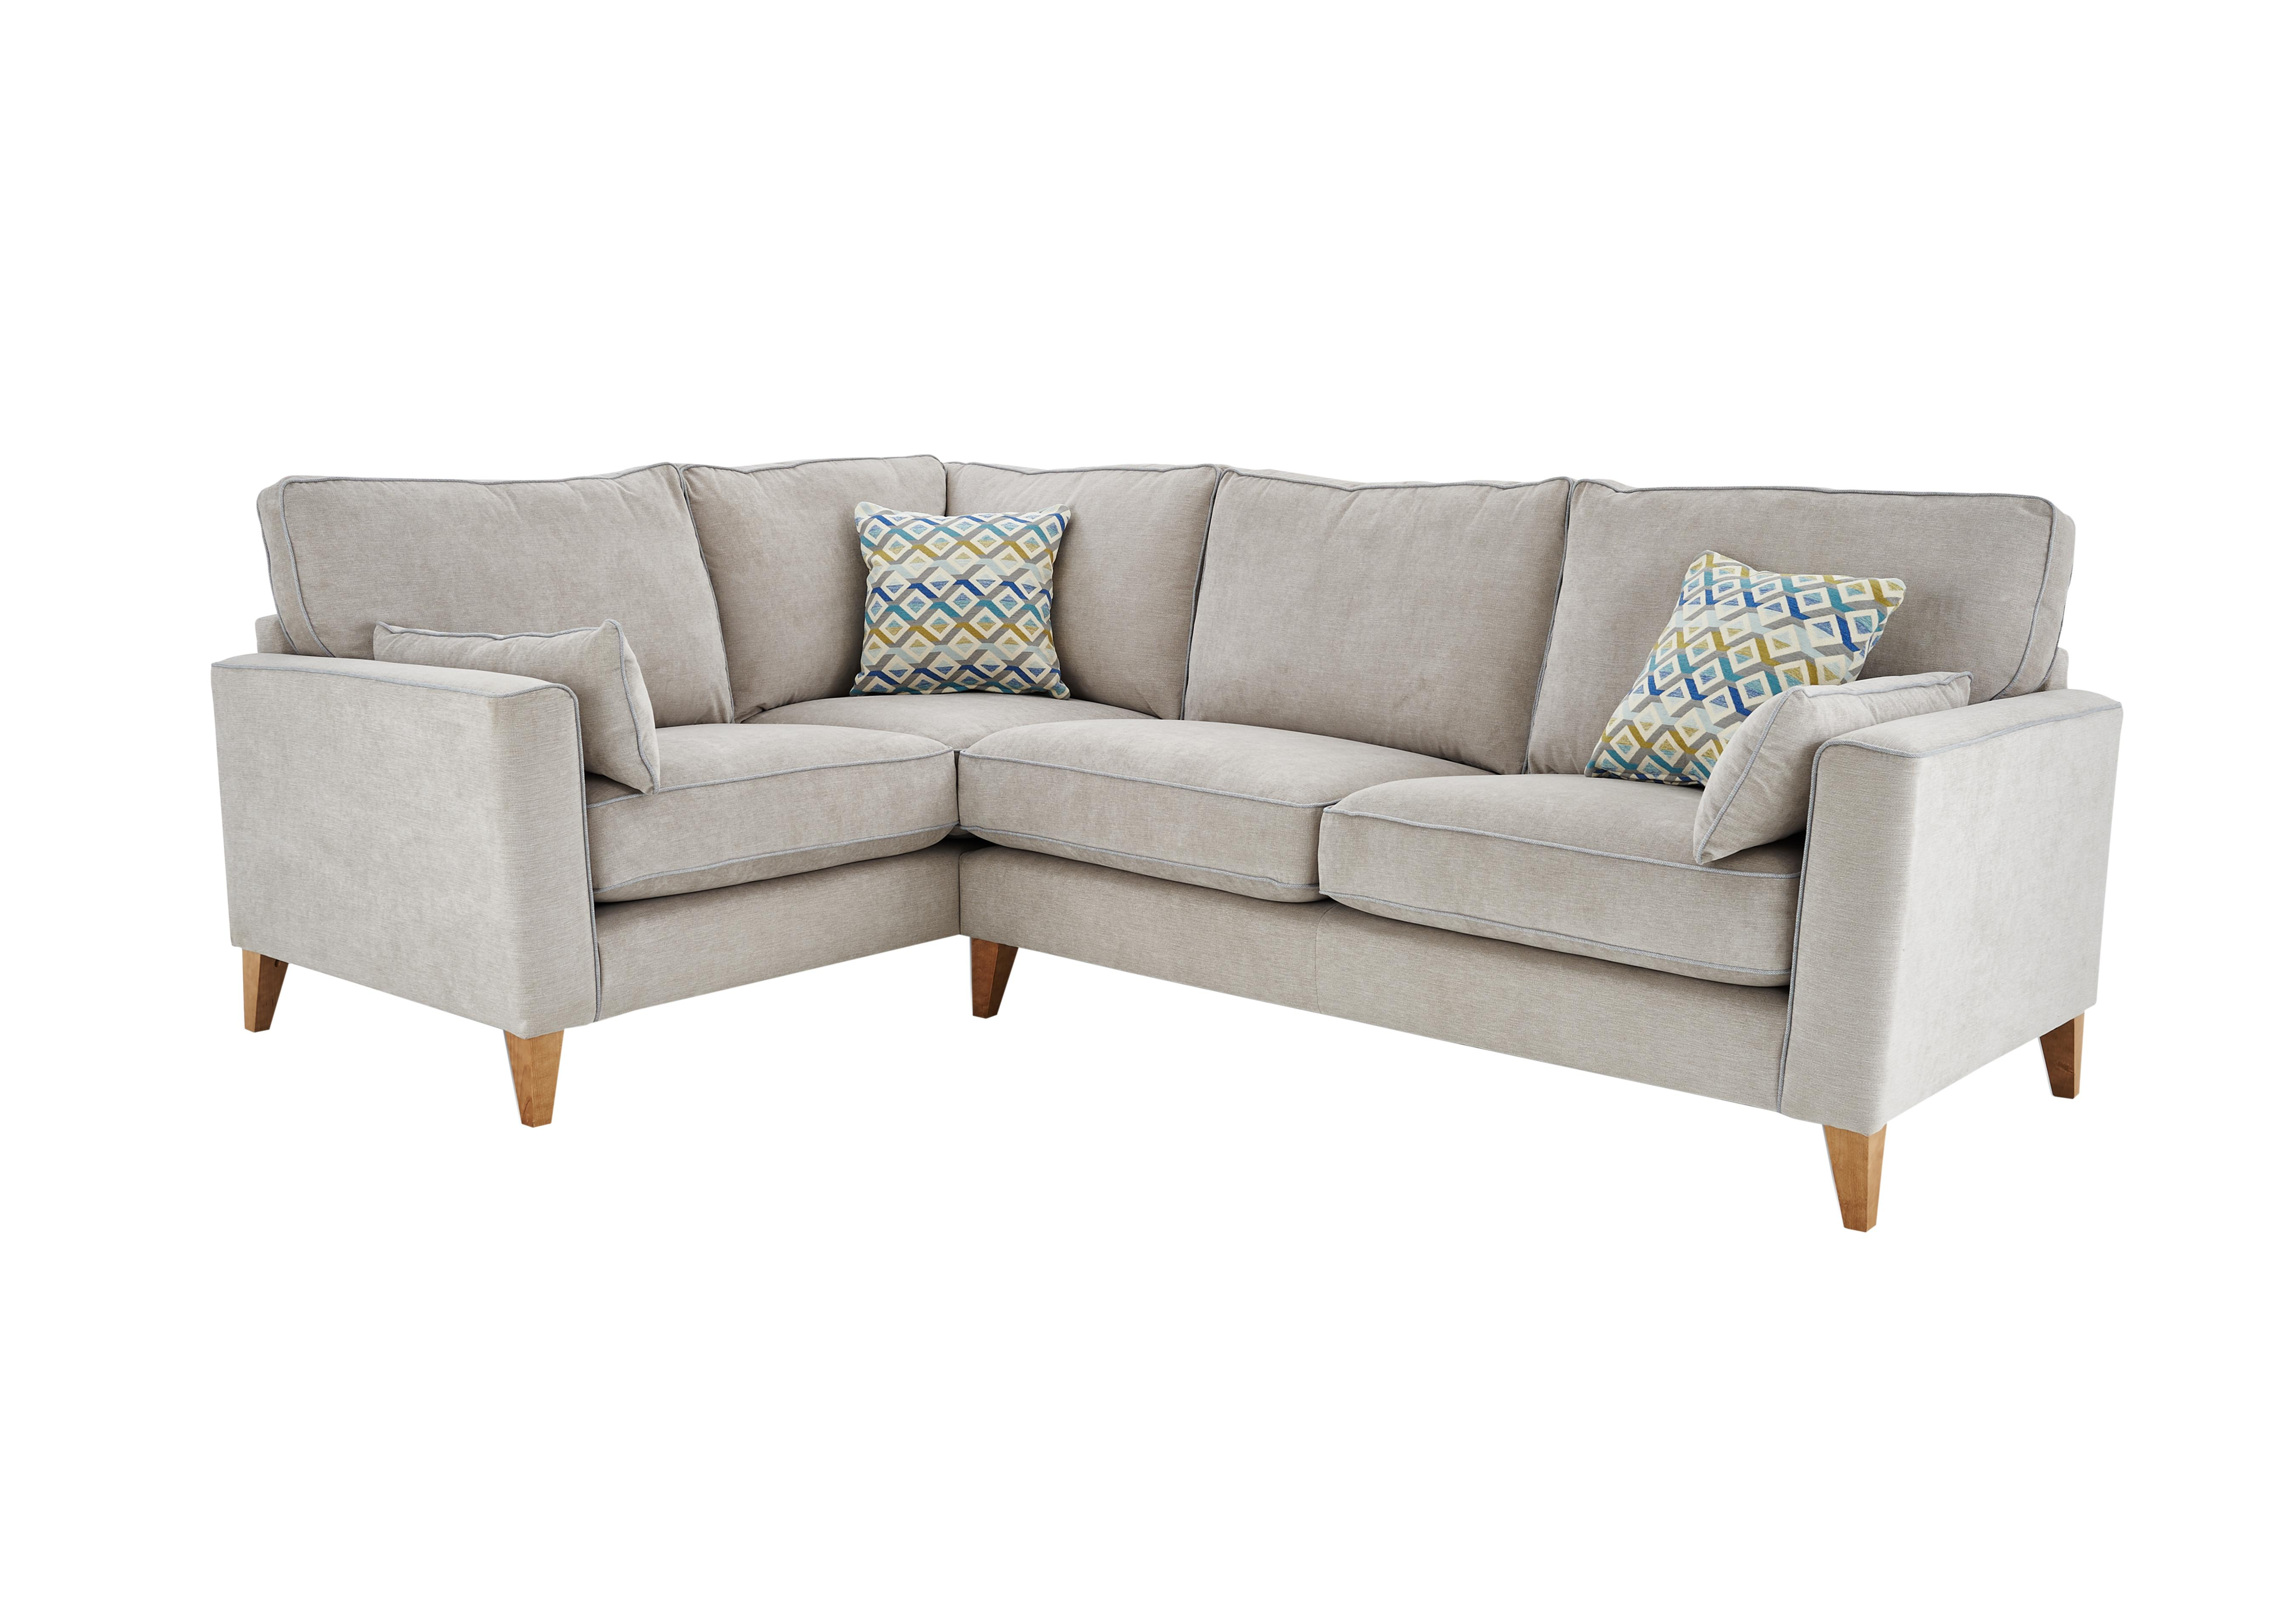 Village Dune Sofa Copenhagen Fabric Corner F With Design Ideas